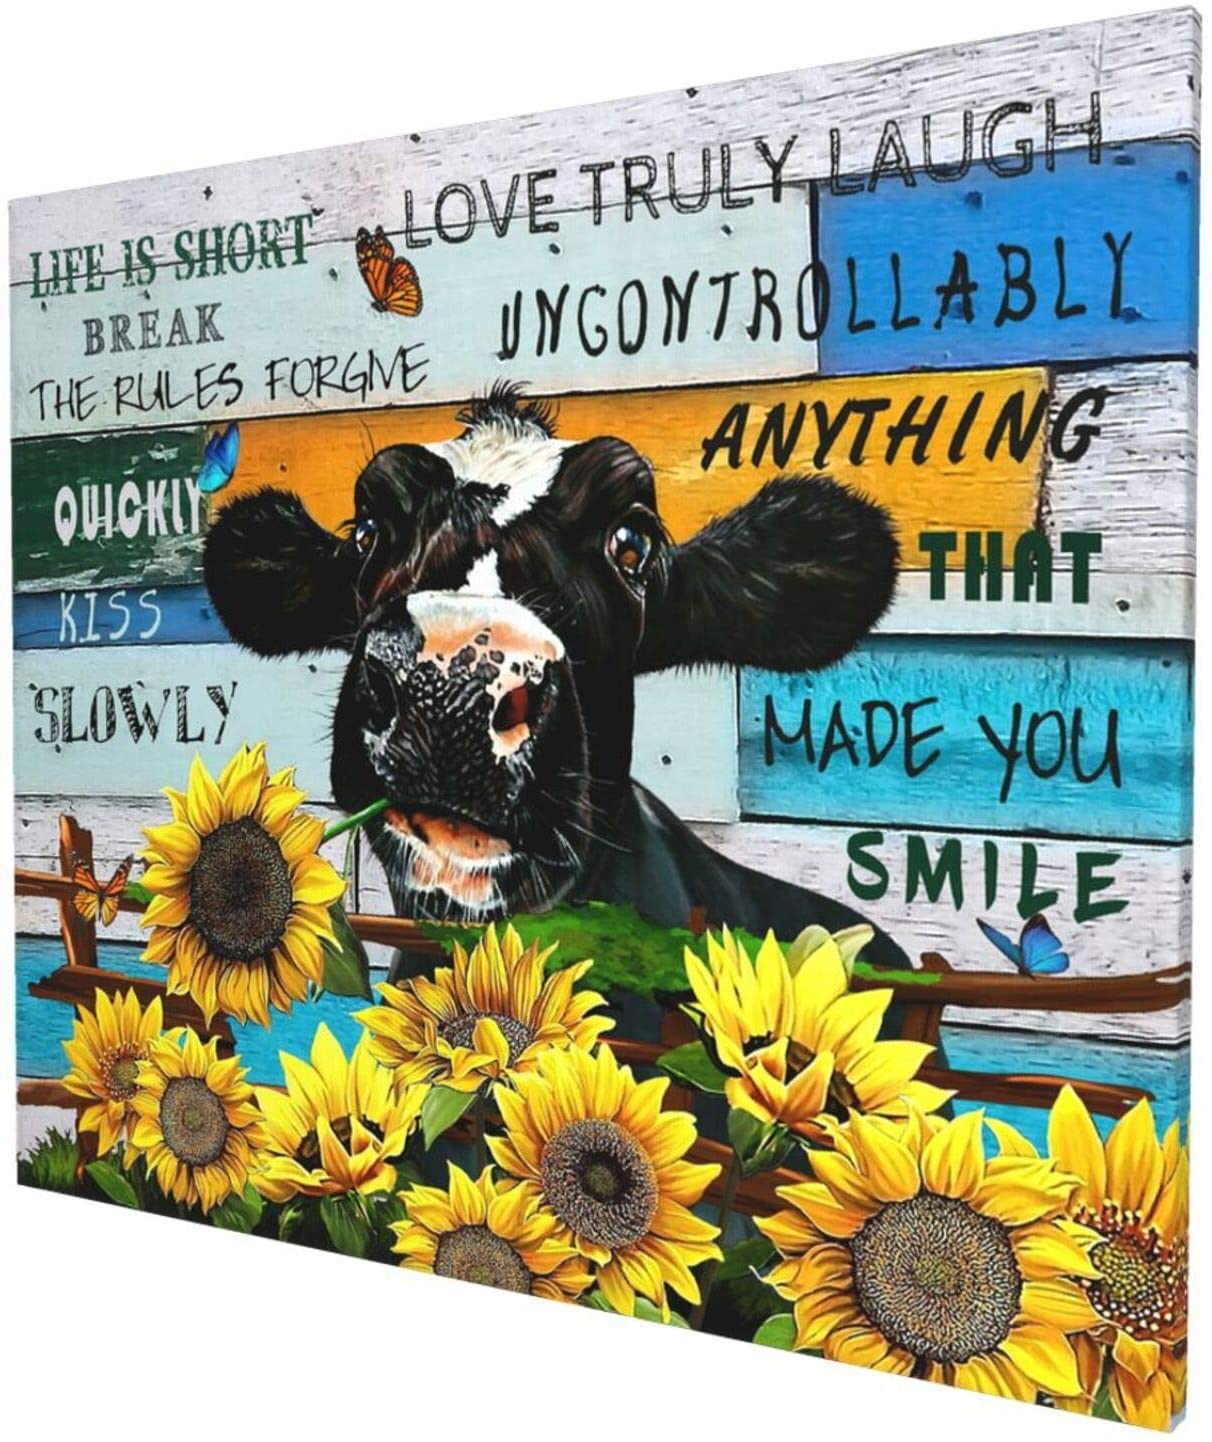 Rustic Cow Wall Decor - Cow Board Themed Farmhouse Artwork For Walls Dectors Giclee Printed For Bedroom Bathroom Framed Ready To Hang 20x24 Inch